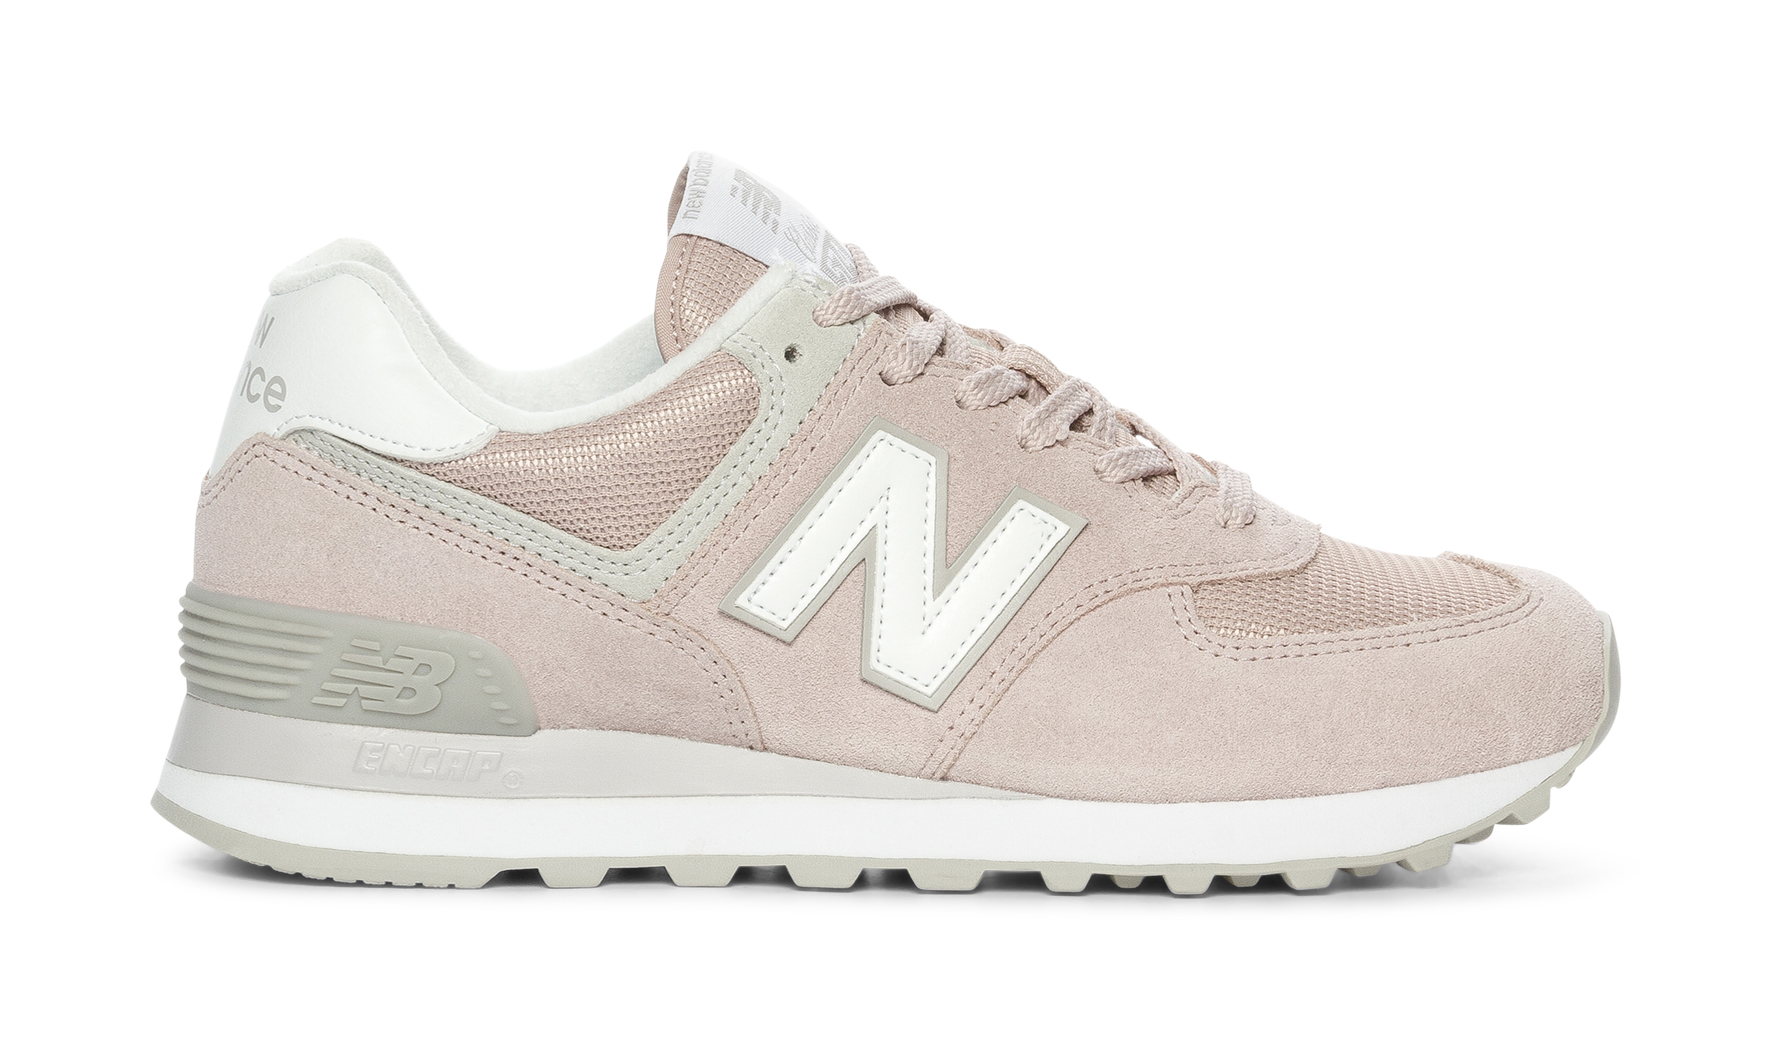 separation shoes 1a356 8591f New Balance 574 - Roosa 314218 feetfirst.fi